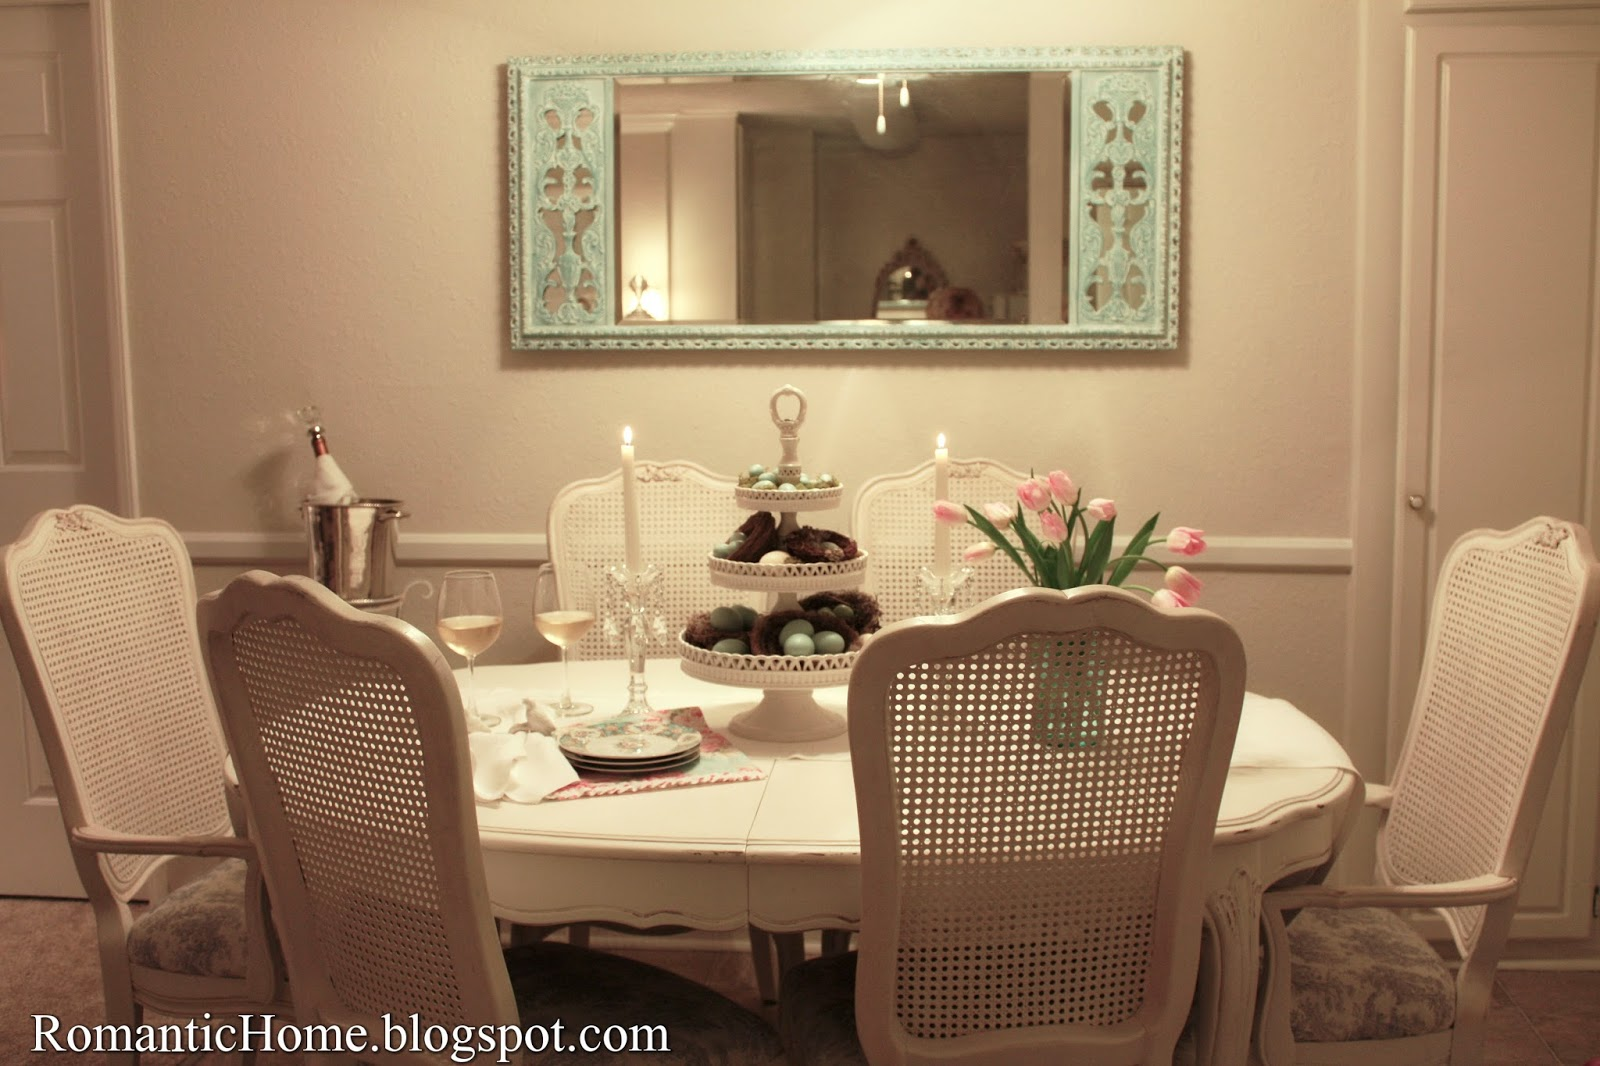 My Romantic Home: Spring Dining Room and a Mirror Makeover - Show ...